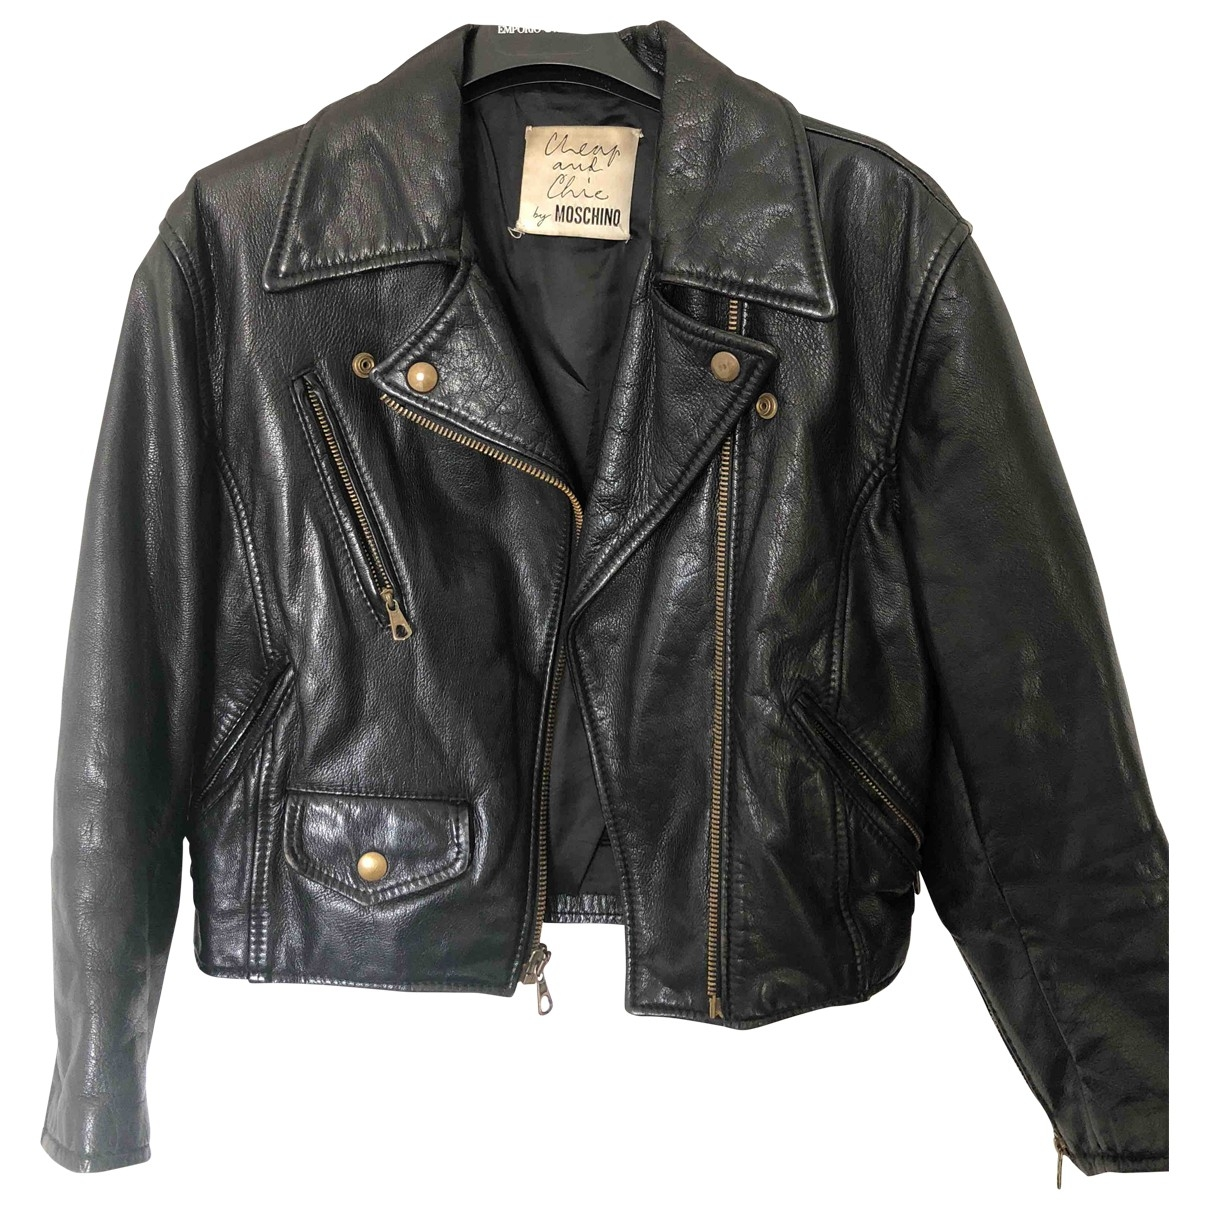 Moschino Cheap And Chic \N Black Leather jacket for Women 42 IT